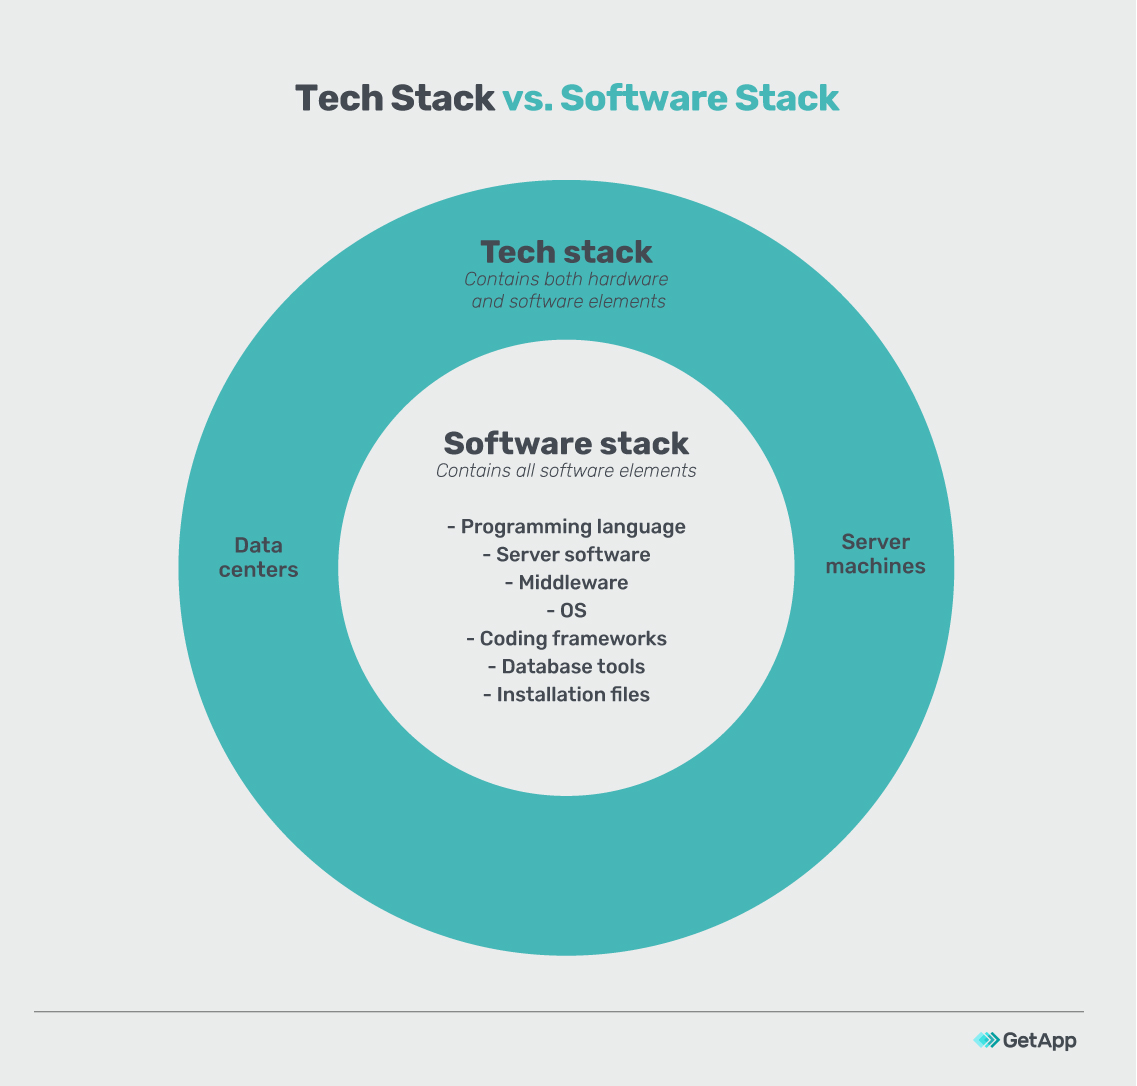 Tech stack vs. software stack